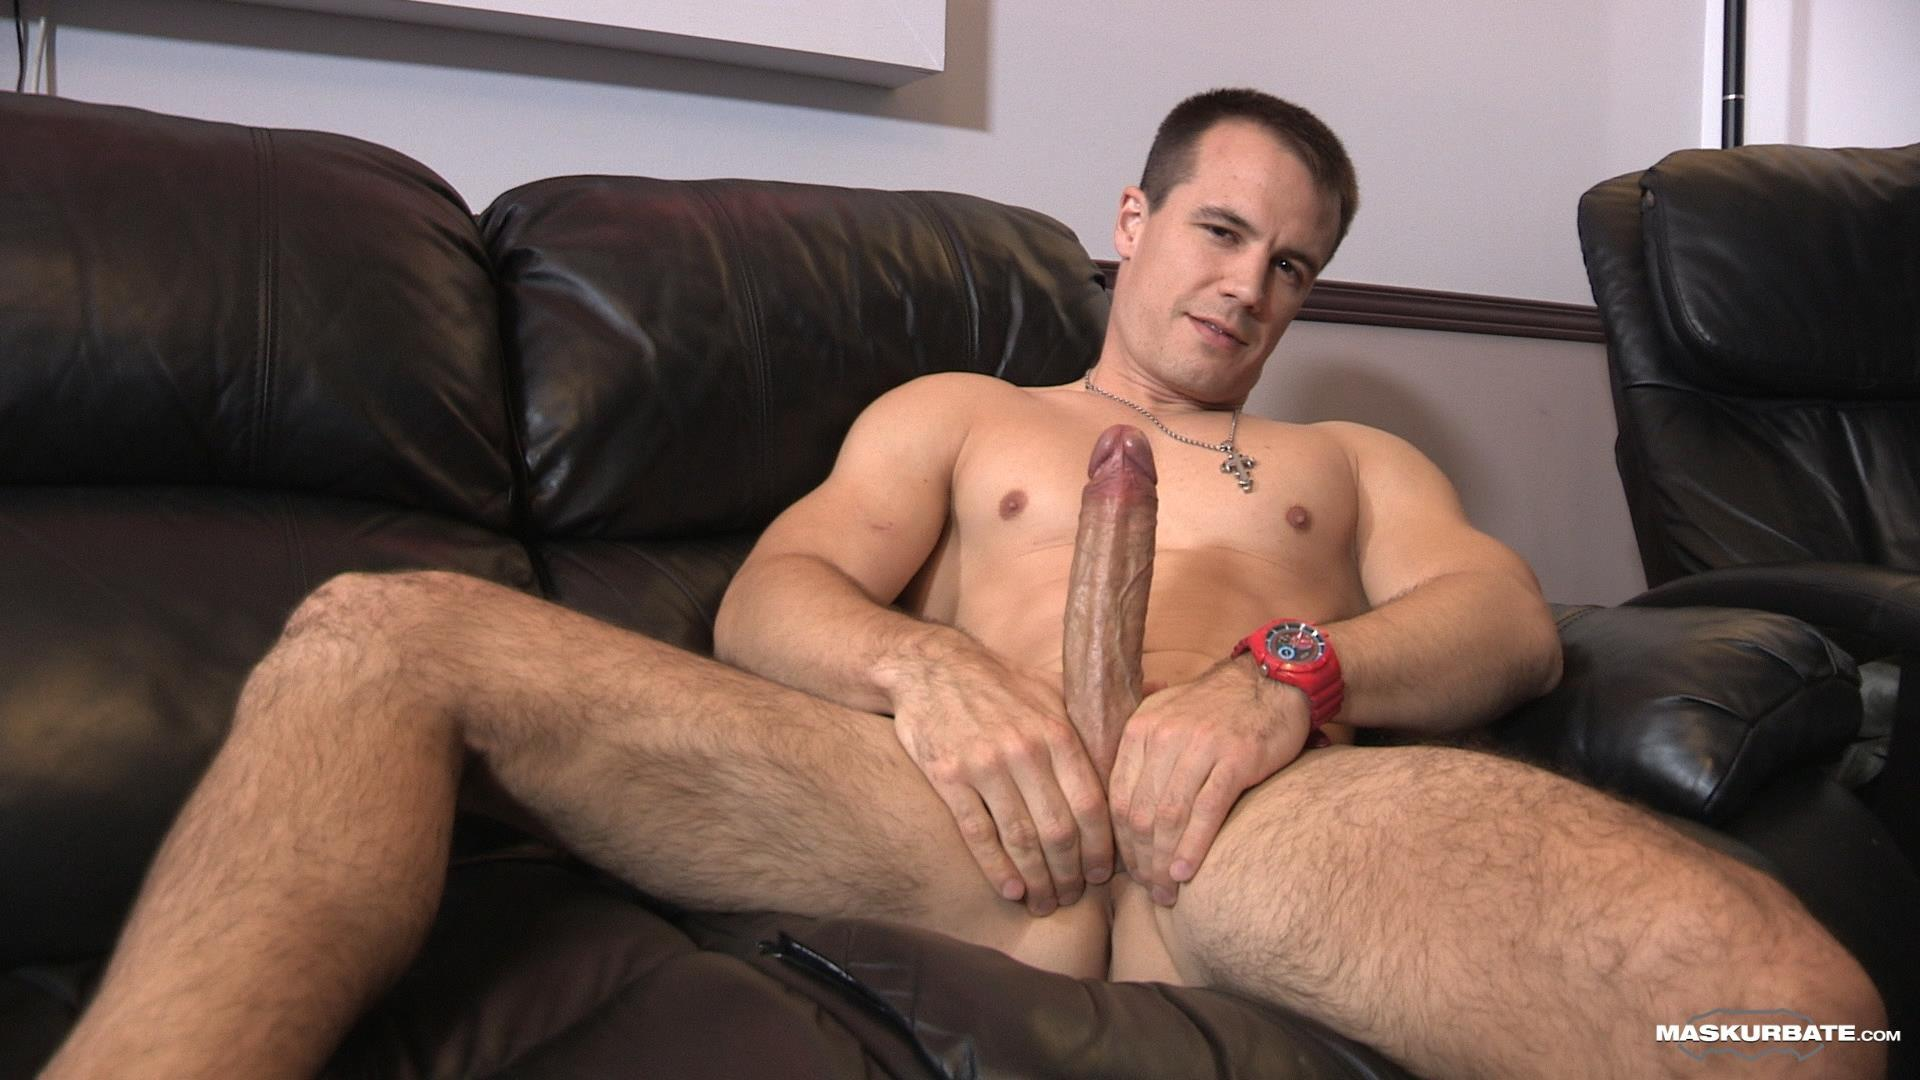 Can solo masturbation male video free porn your place